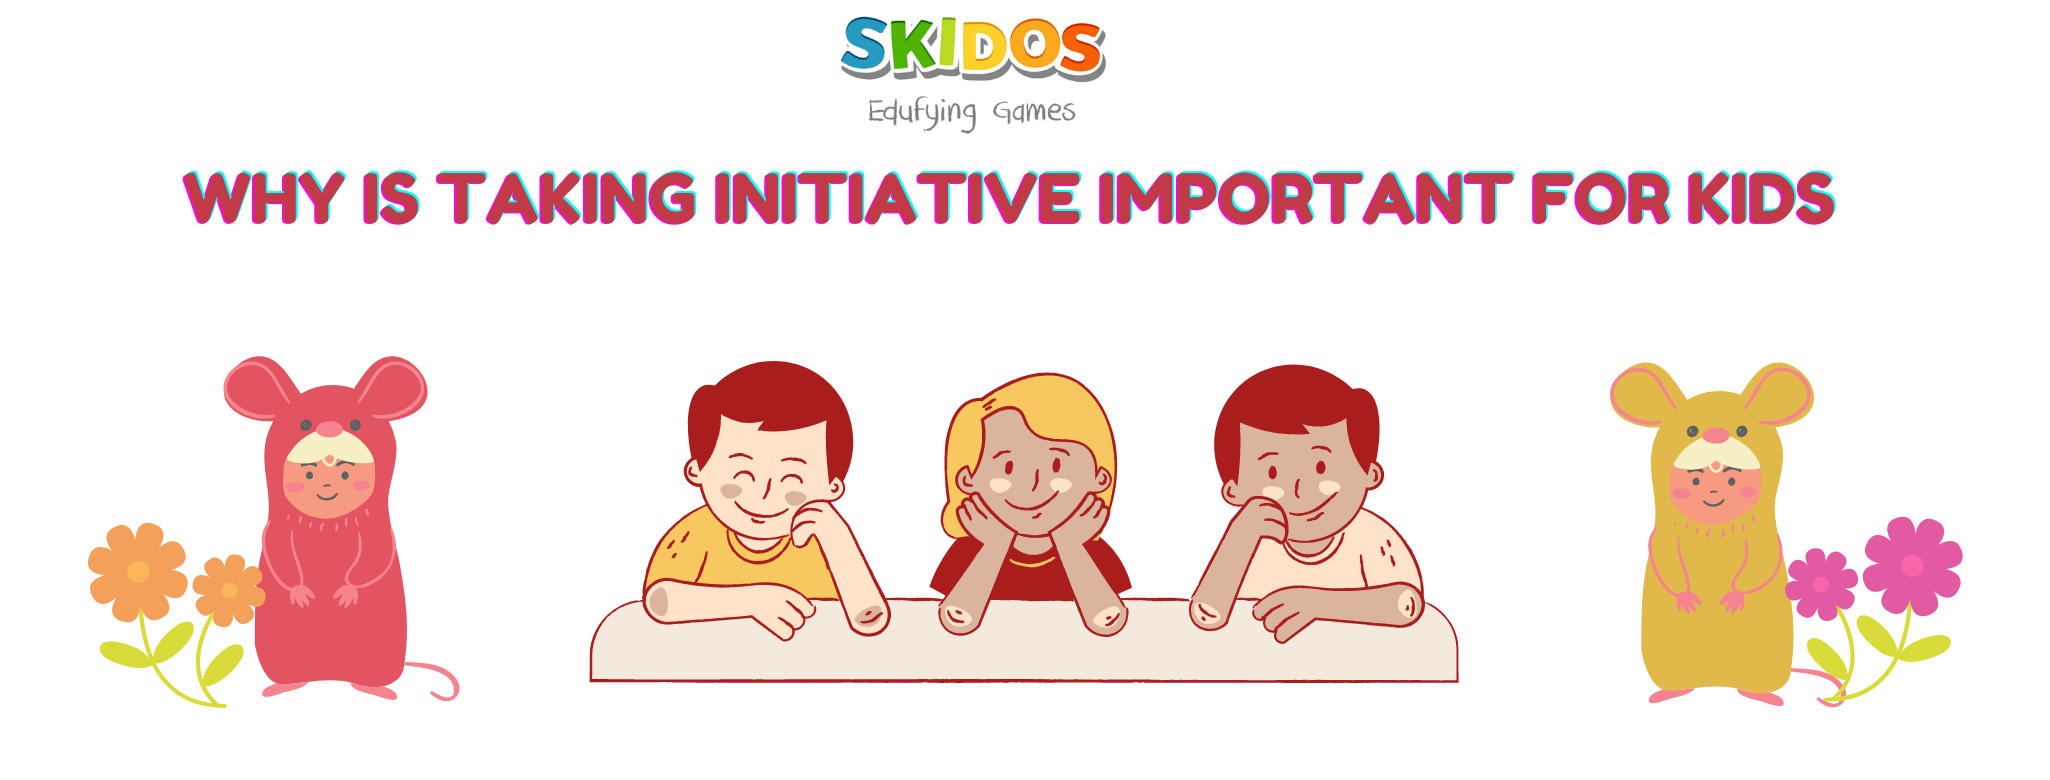 Why is taking initiative important for kids